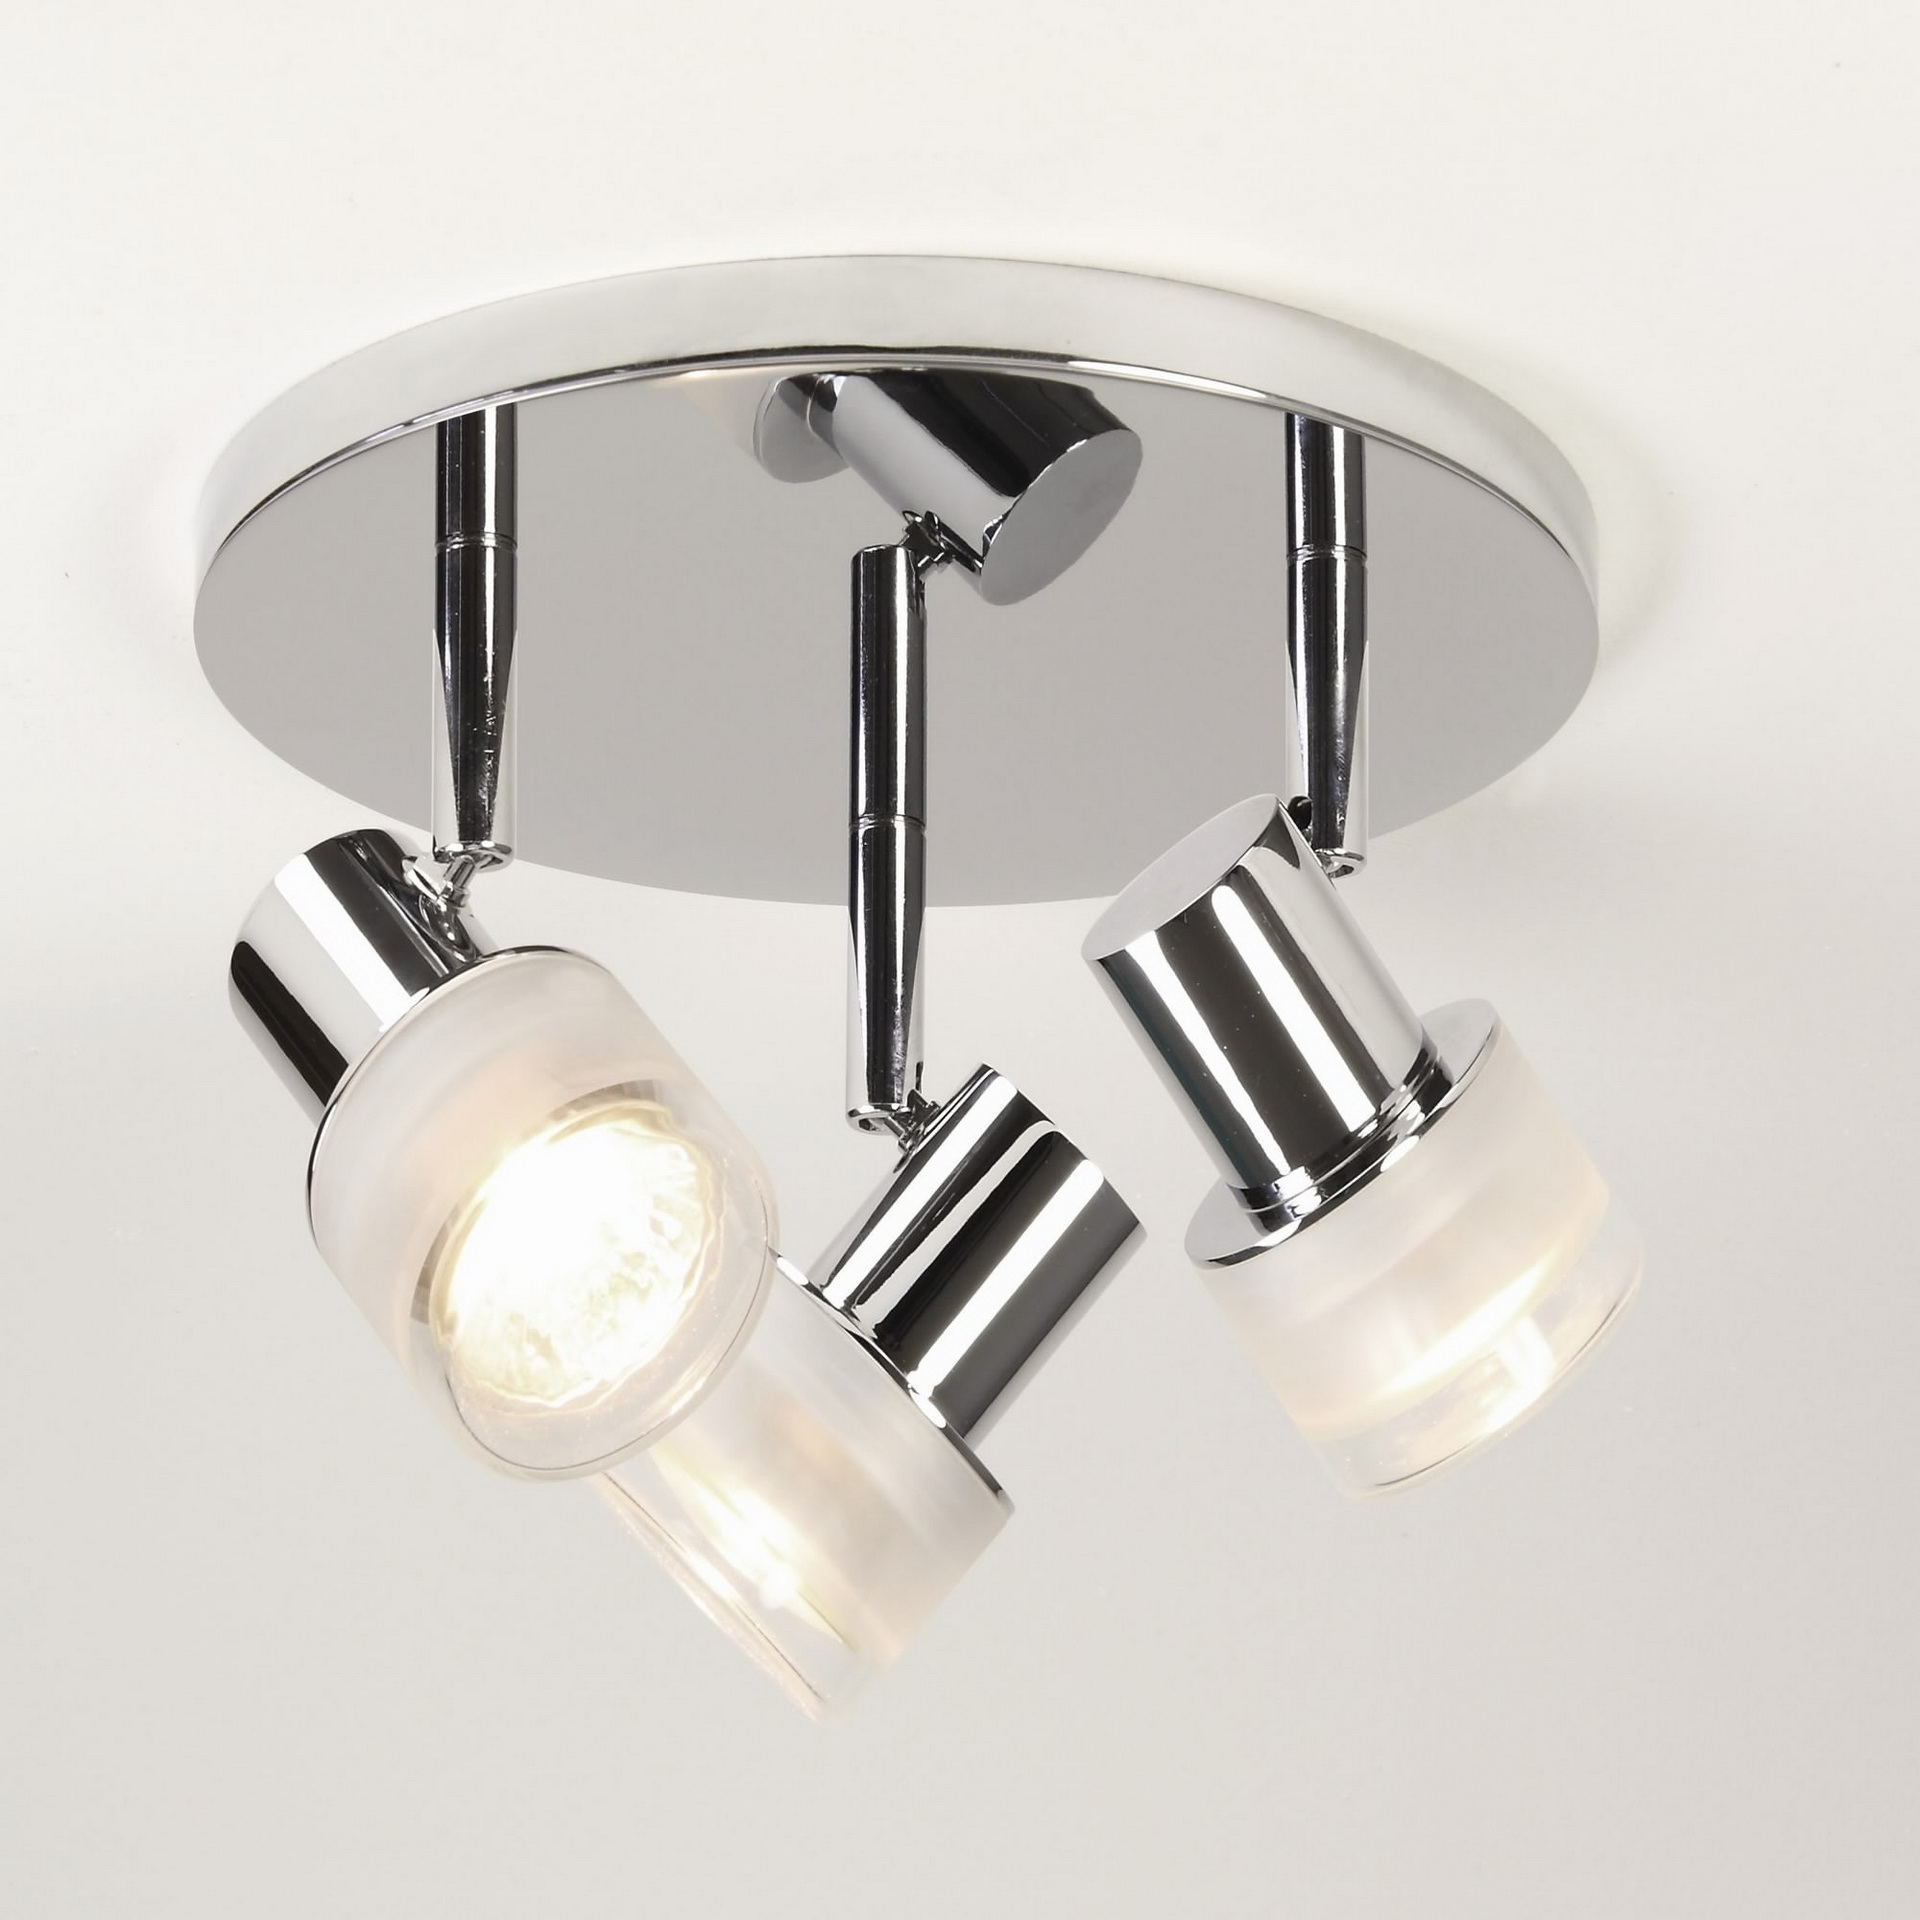 Bathroom Ceiling Lights 10 Things To Know About Bathroom Ceiling Light Shades Warisan